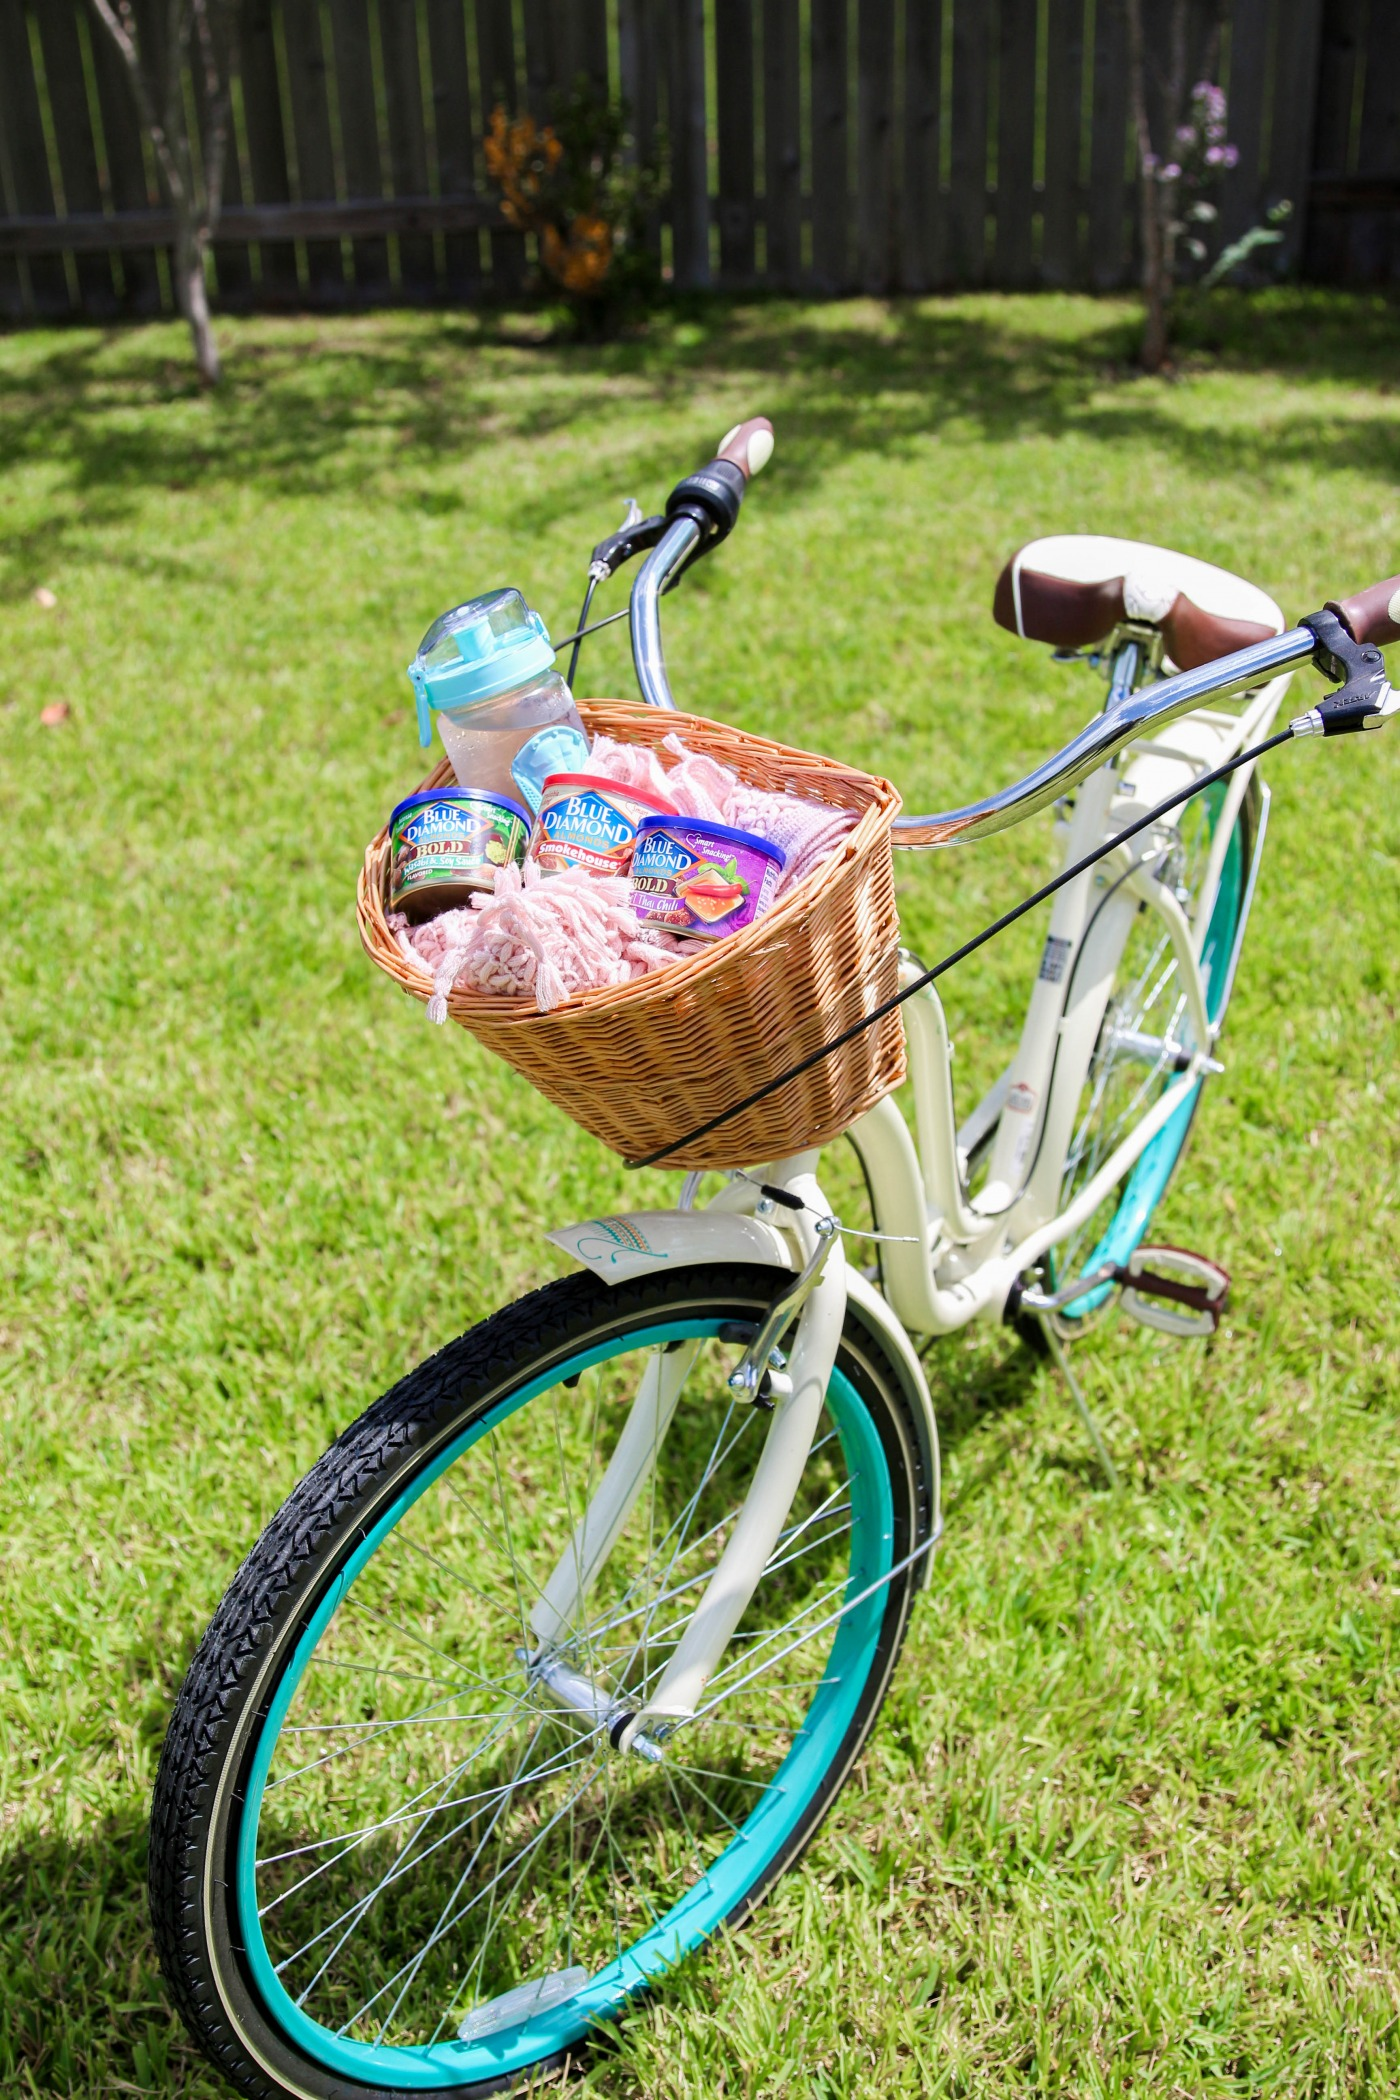 Nature trails, bike tracks, and flavored almonds with Blue Diamond